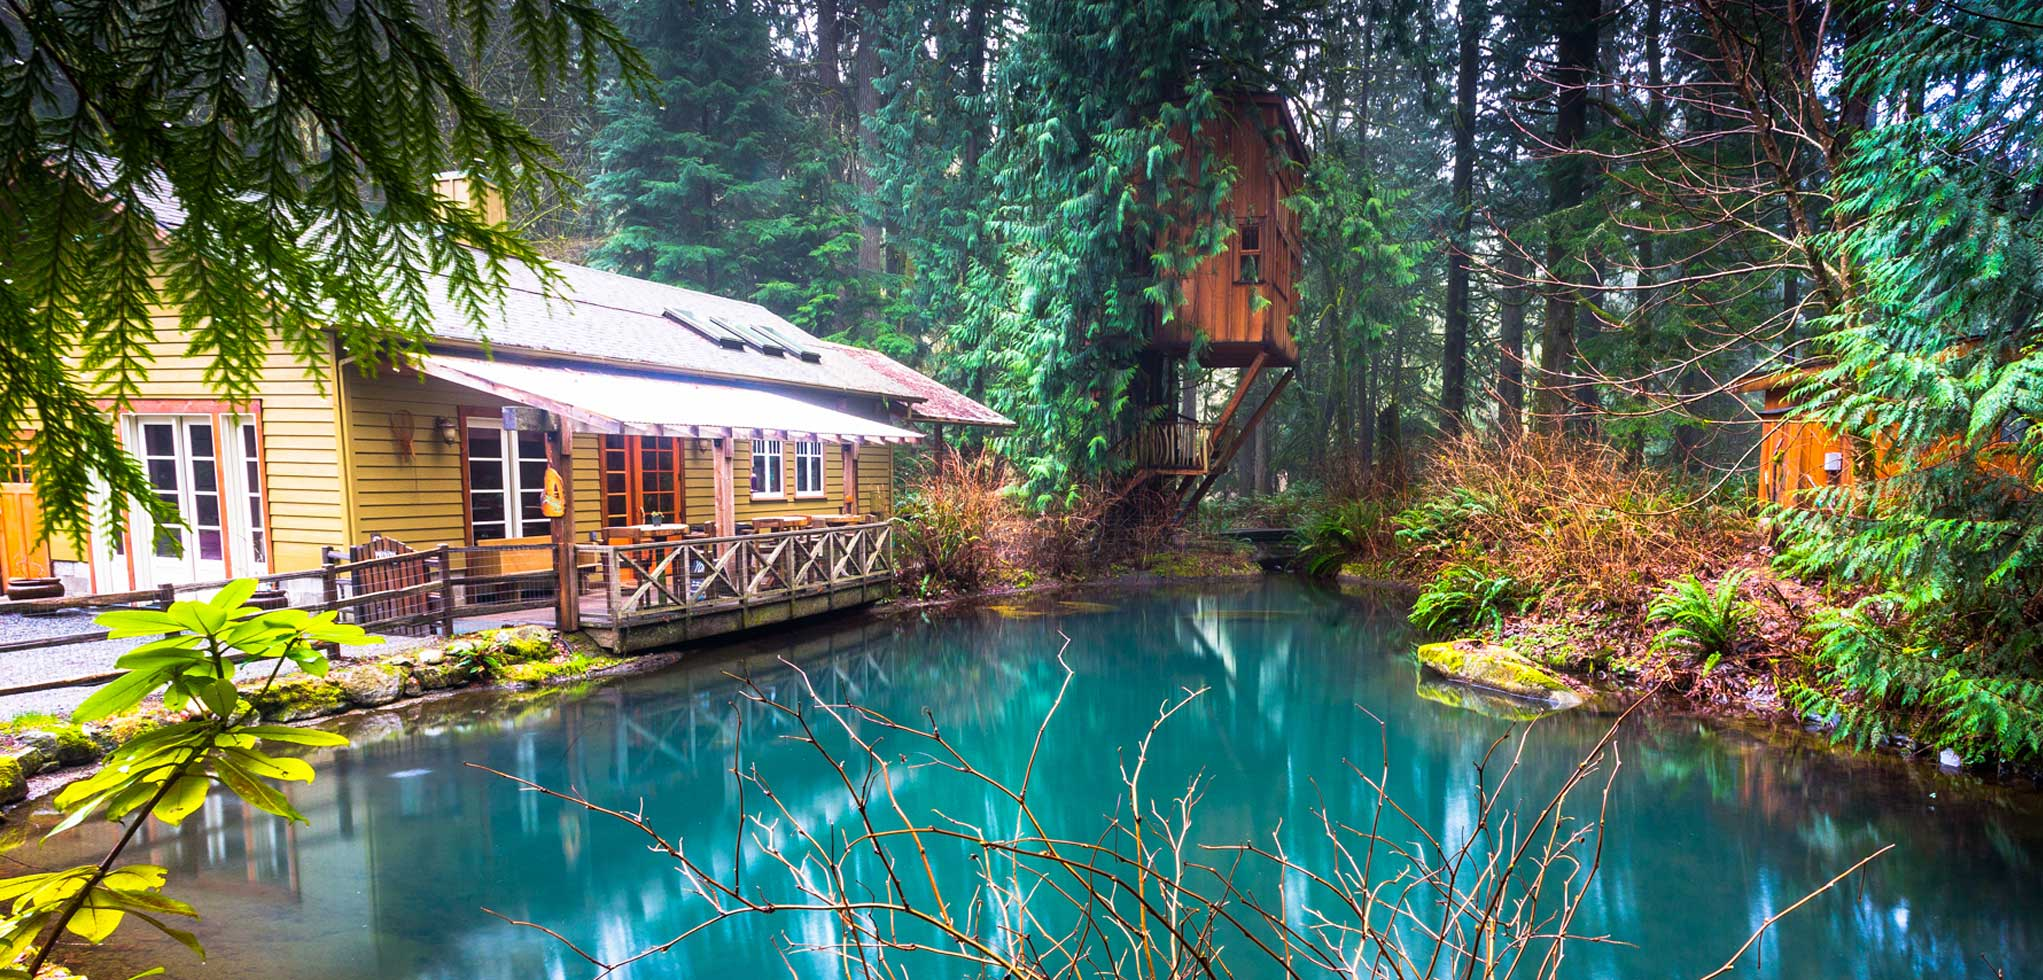 Treehouse Point Fall City Part - 33: Plan Your Event At Treehouse Point In Fall City Washington ...